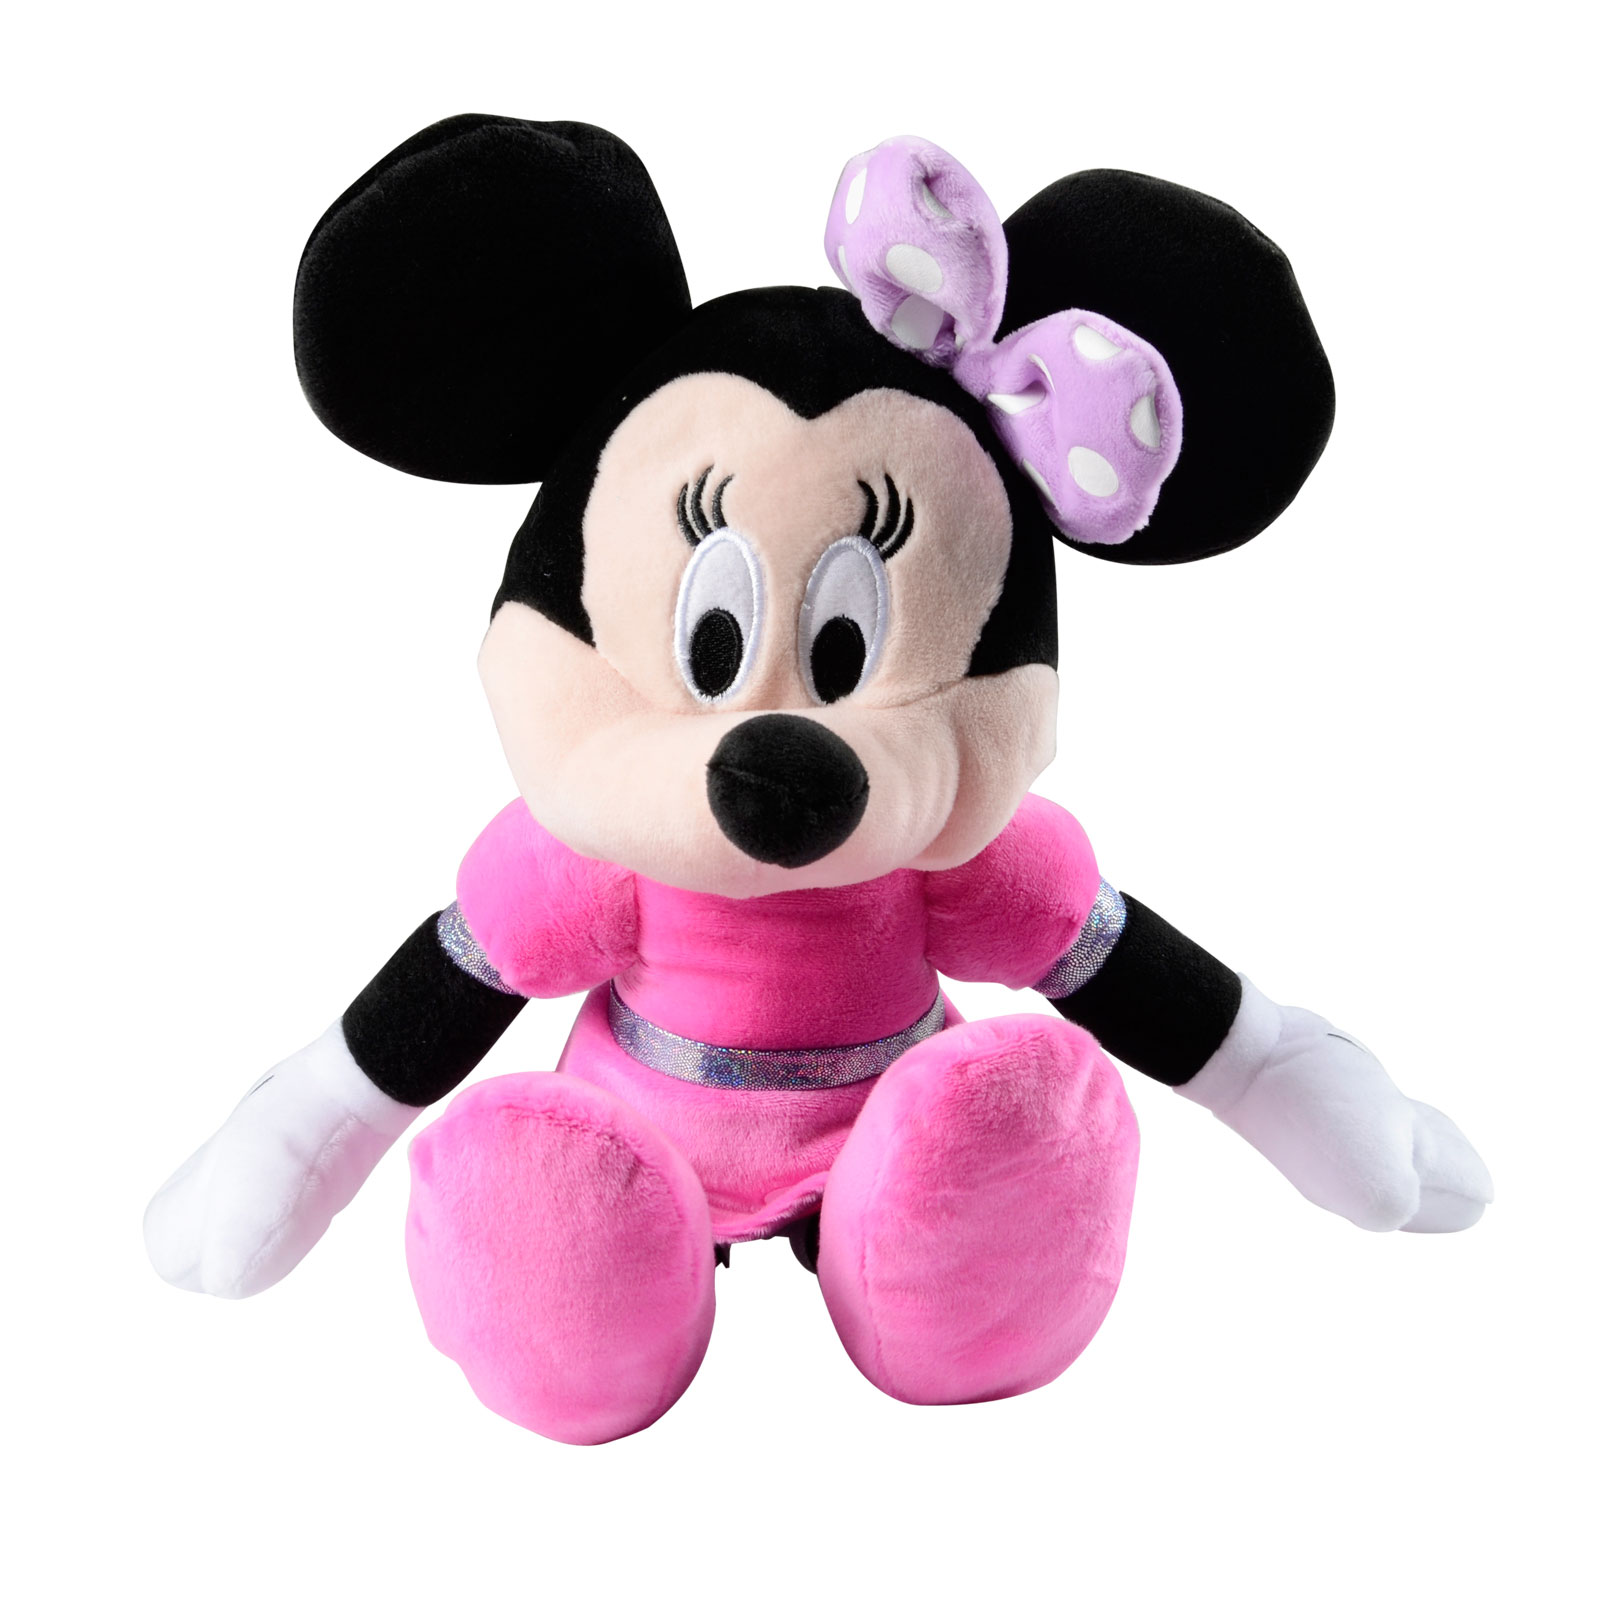 Minnie Mouse Toys : Childrens girls minnie mouse boutique in pink dress soft